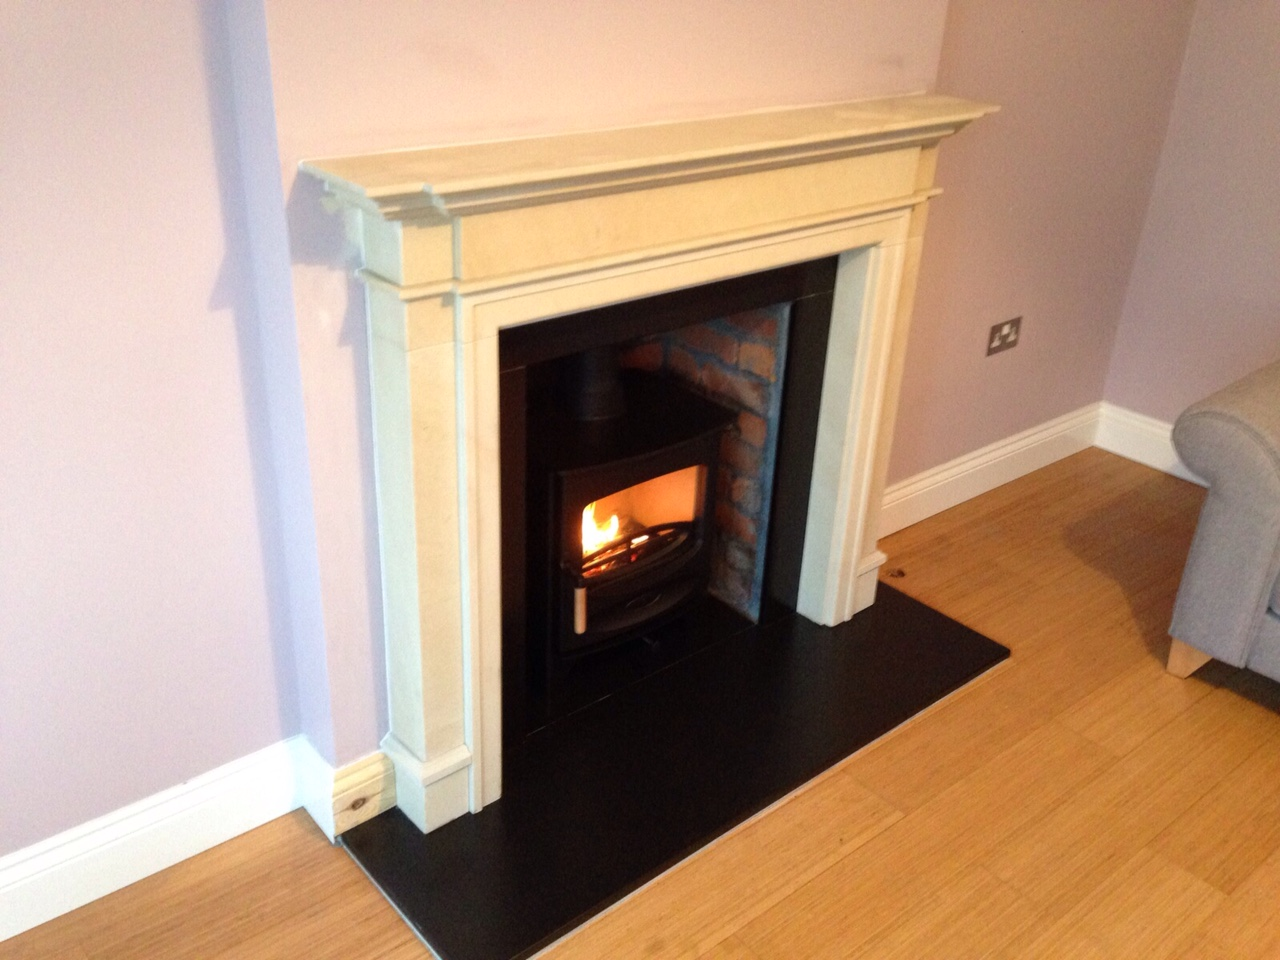 Embers Bristol stove installation and mantelpiece